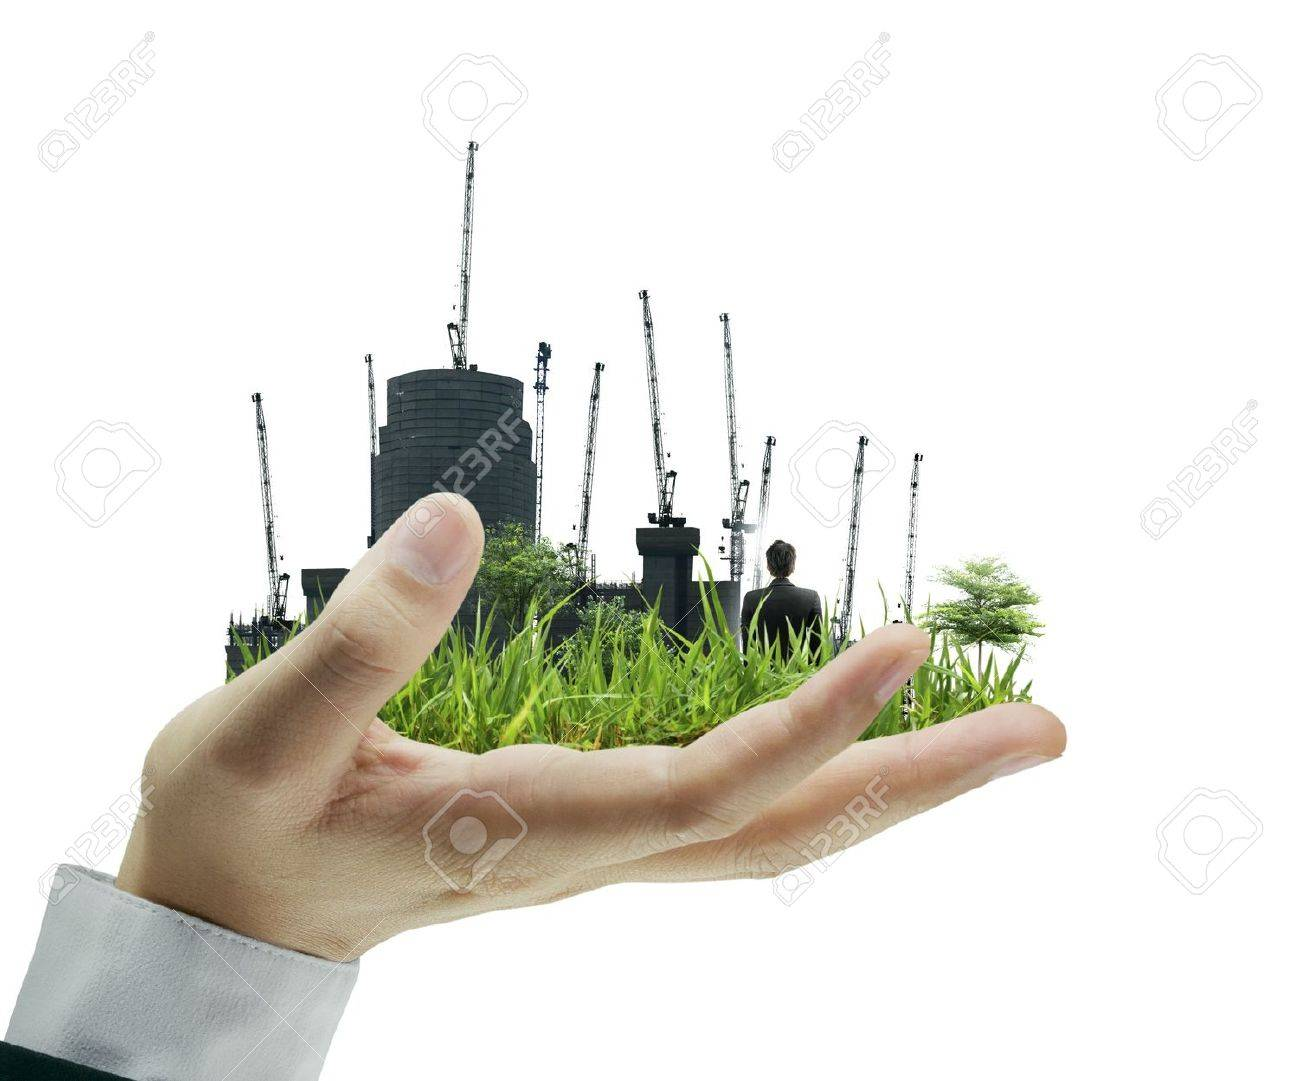 person holding a business, building on hand Stock Photo - 10046540